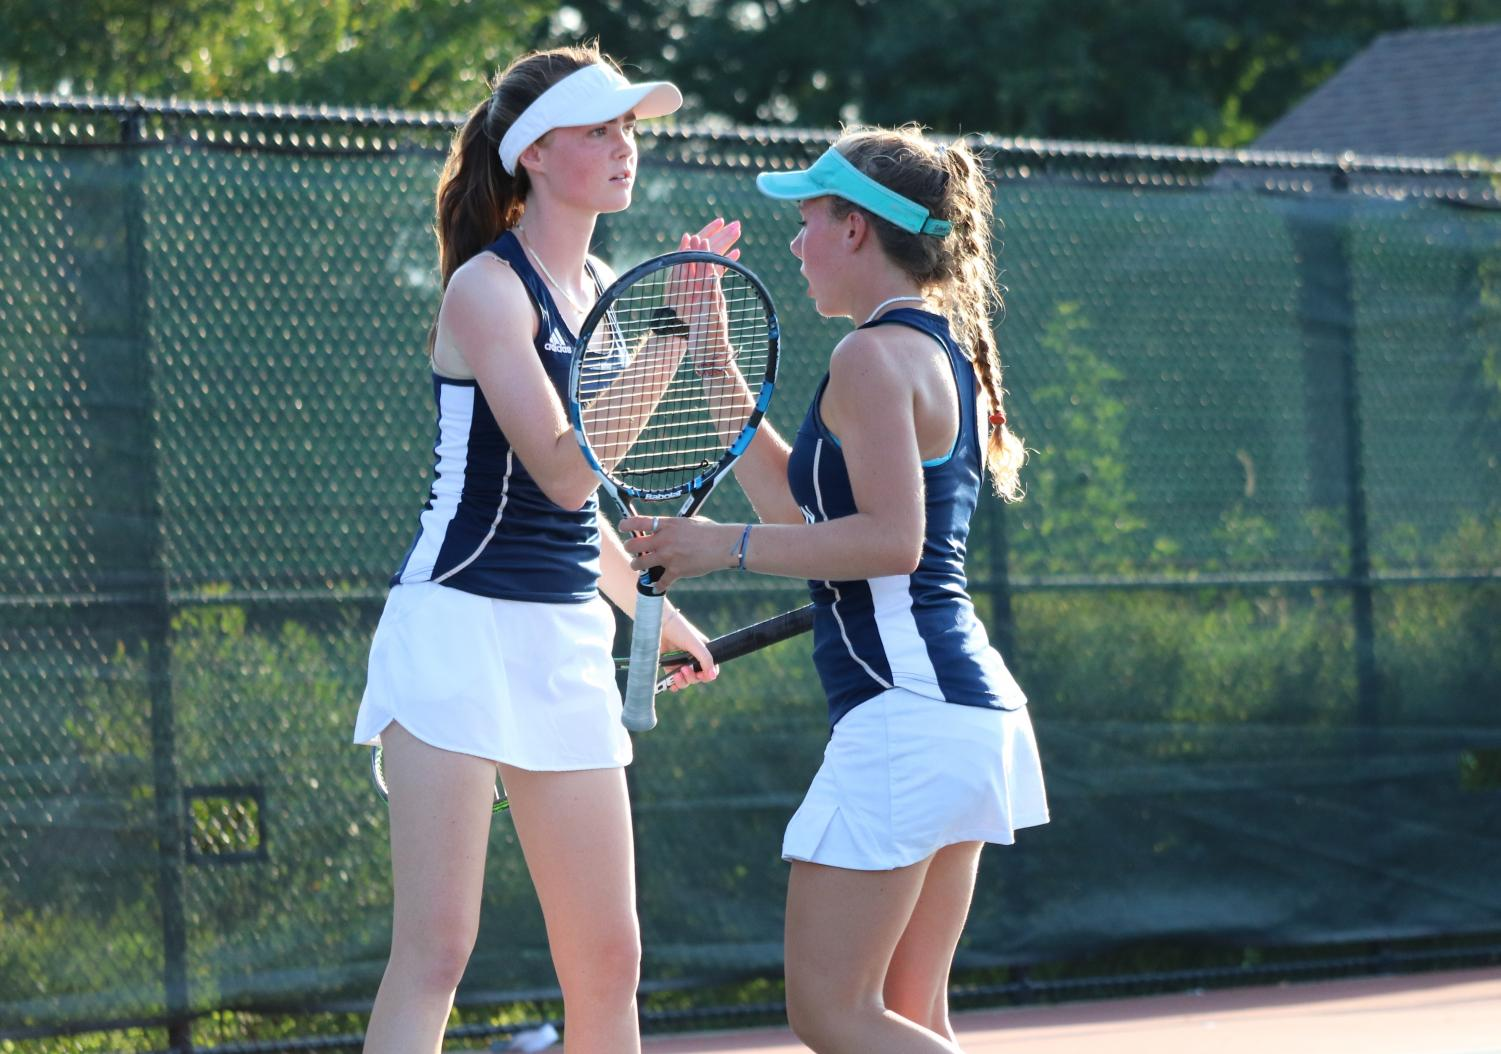 Seniors Margot Conner and Annie Hedges congratulate one another after a winning point during a regular season match versus New Trier.